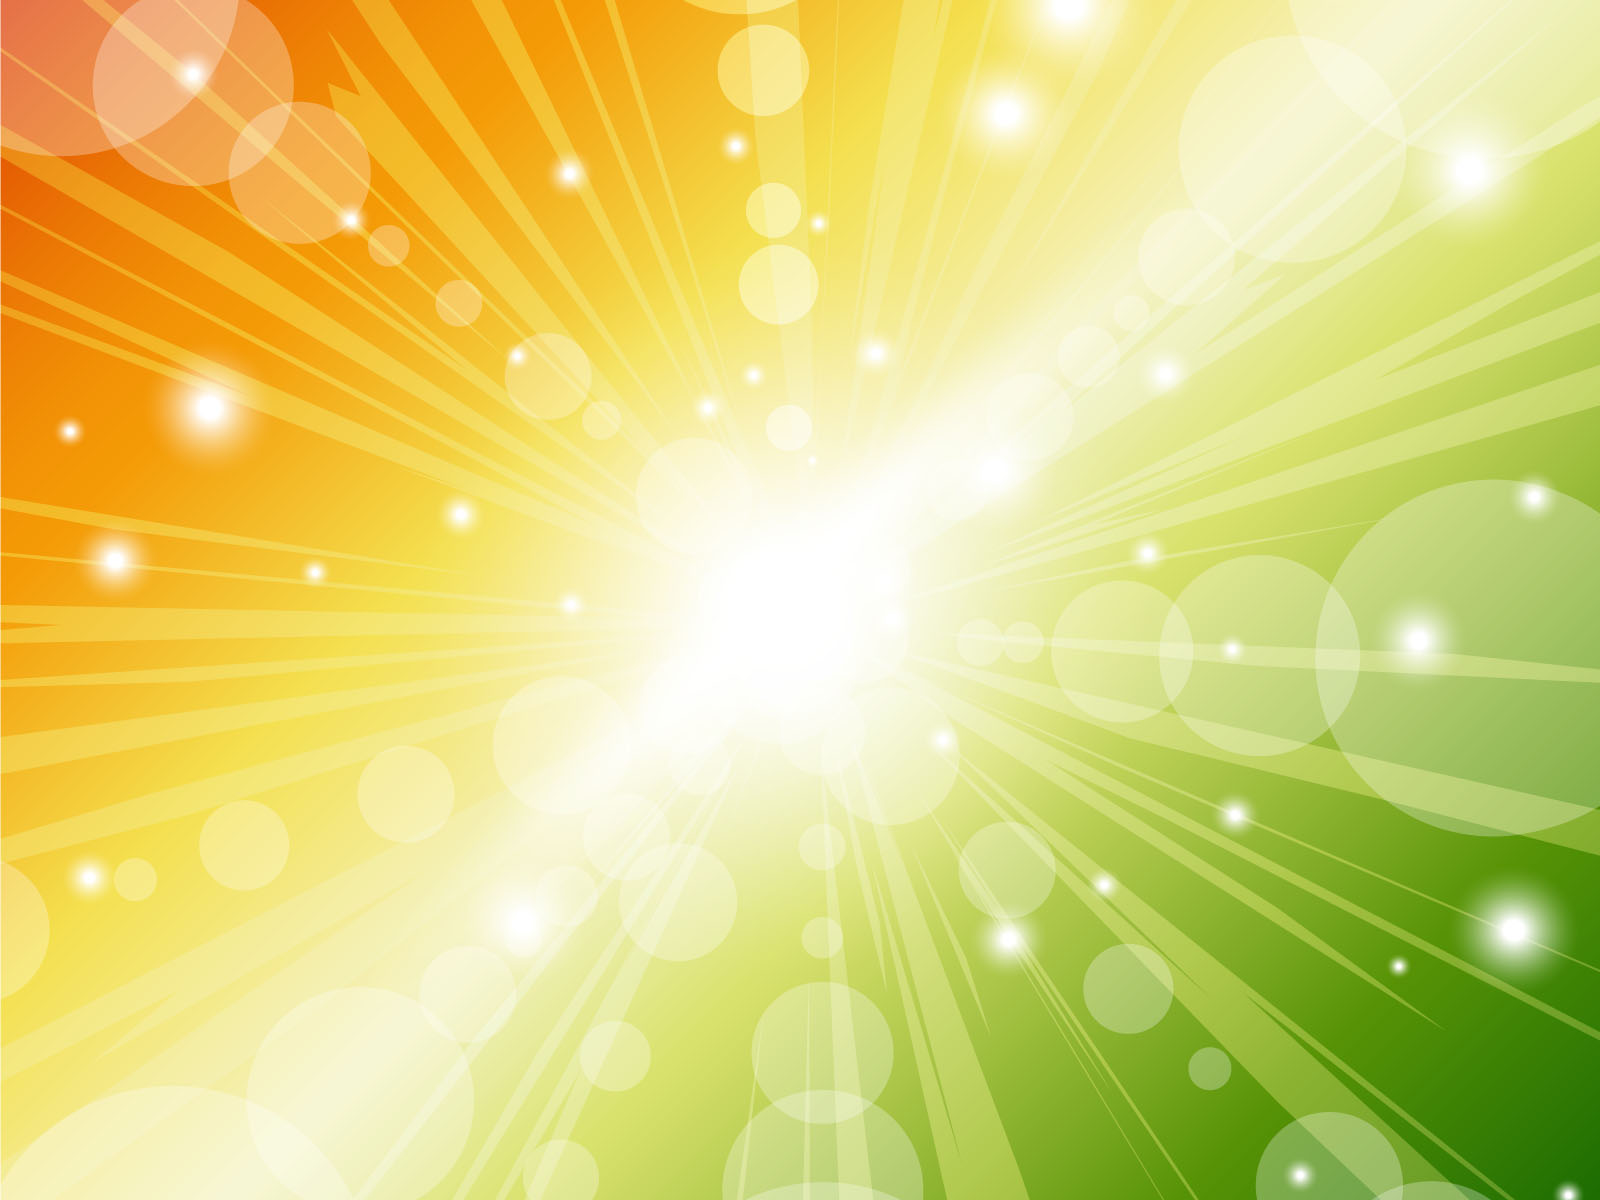 Abstract Sunbeam Design PPT Backgrounds